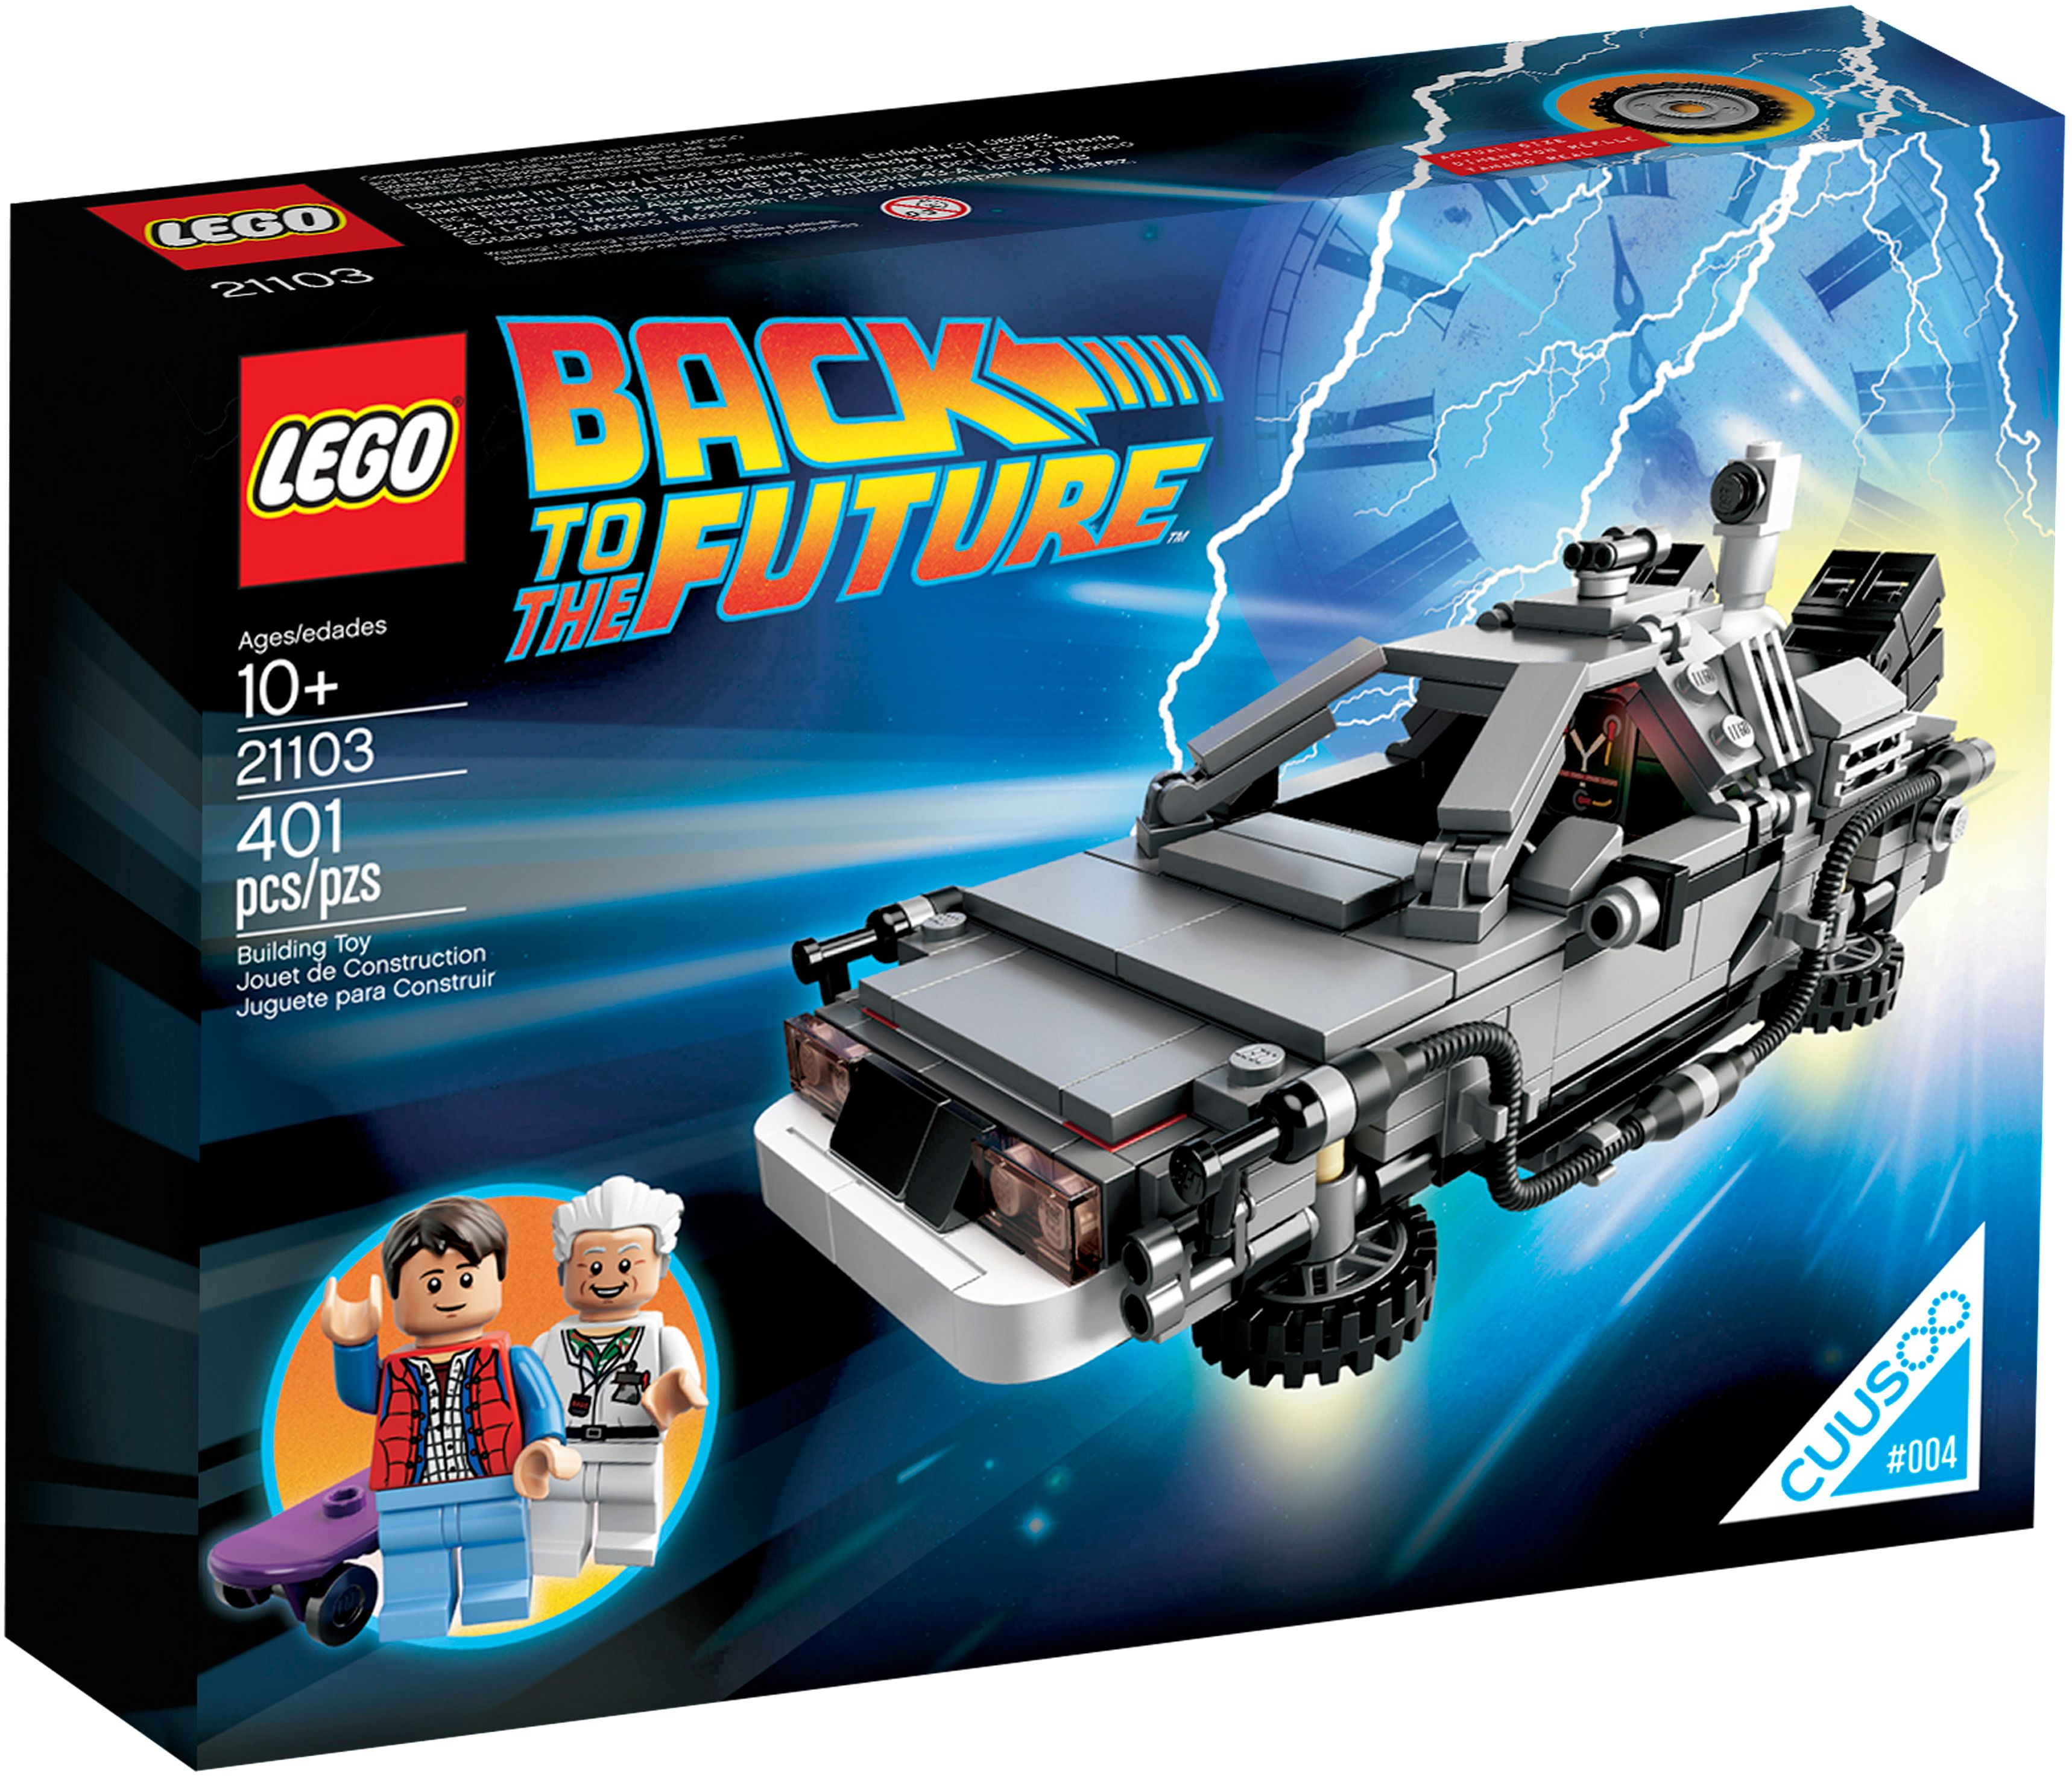 Lego 21103 Back to the Future Car - the Delorean